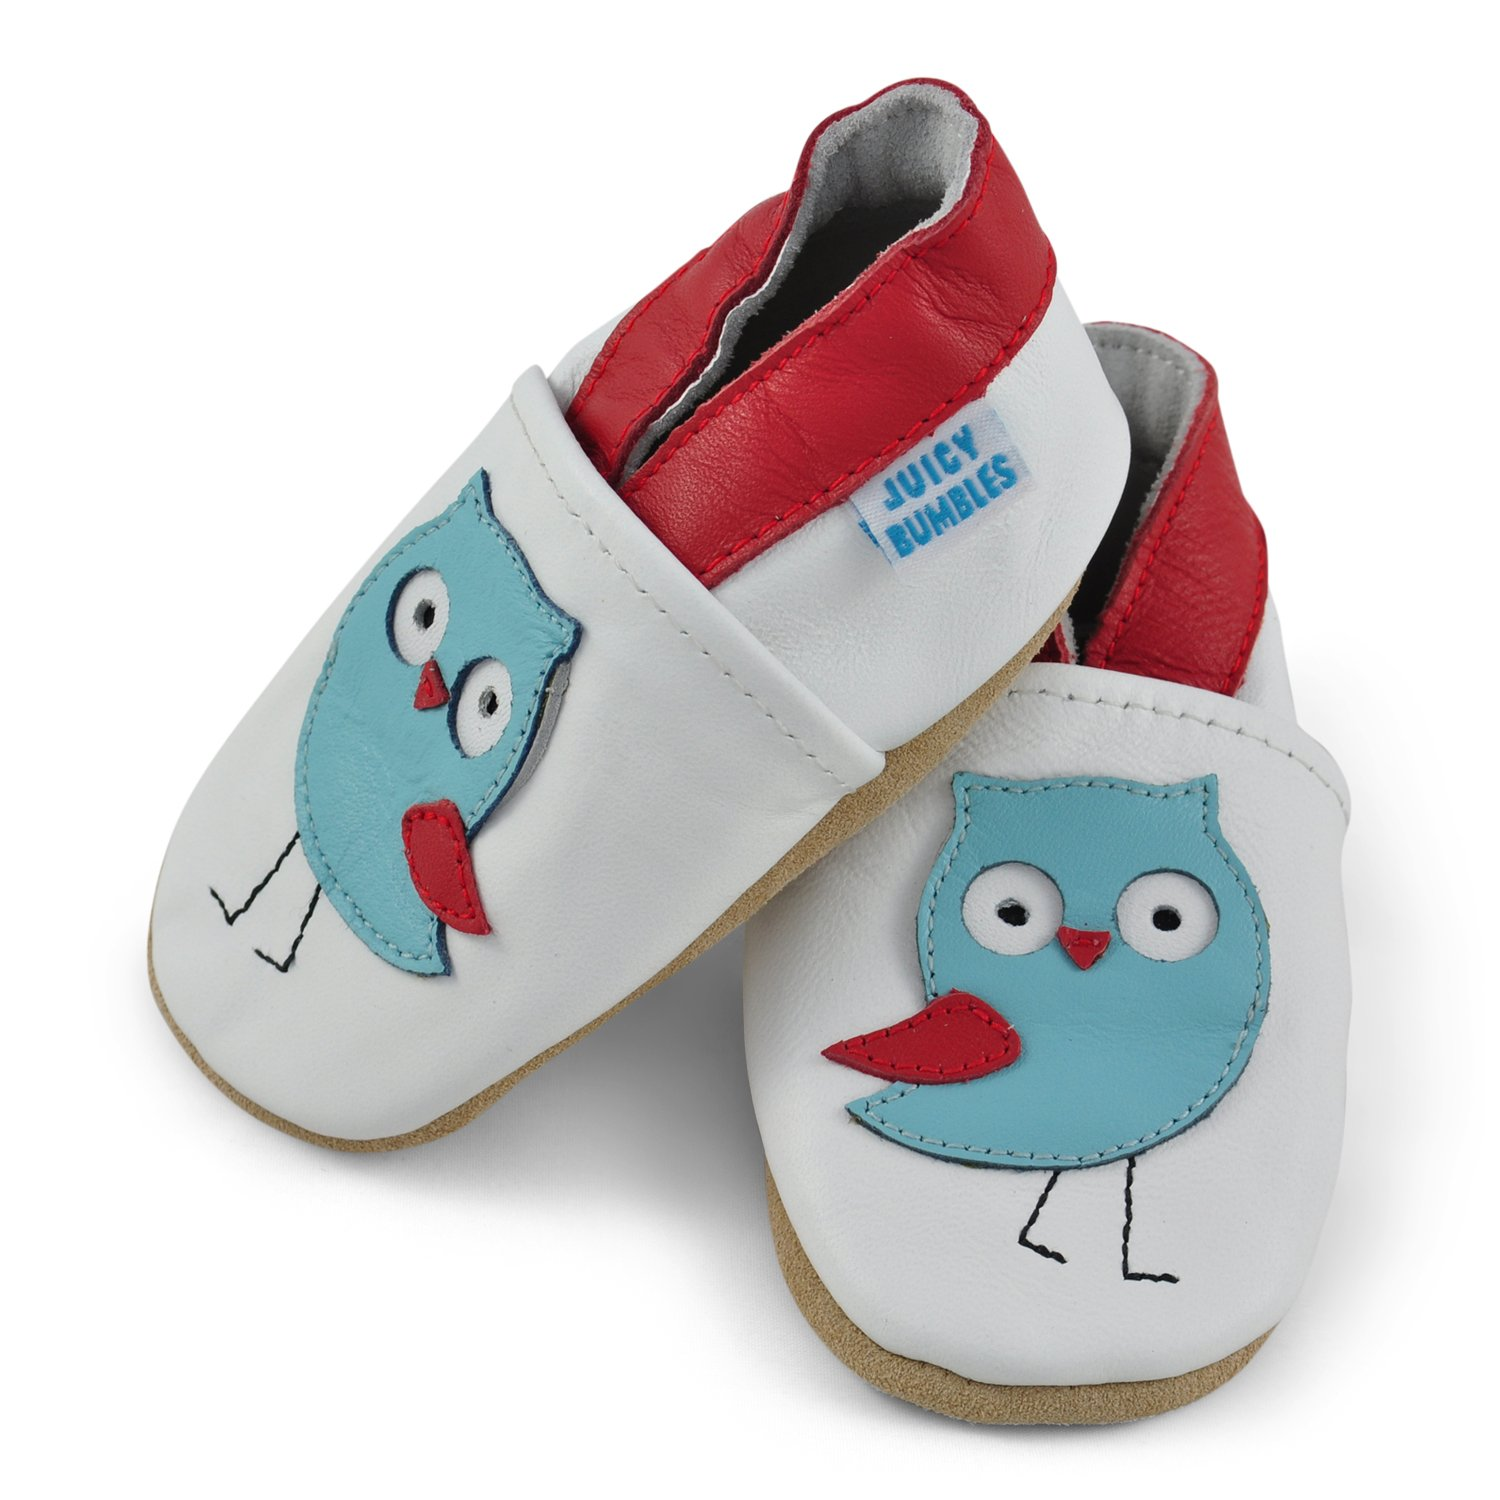 Beautiful Soft Leather Baby Shoes Toddler Shoes with Suede Soles